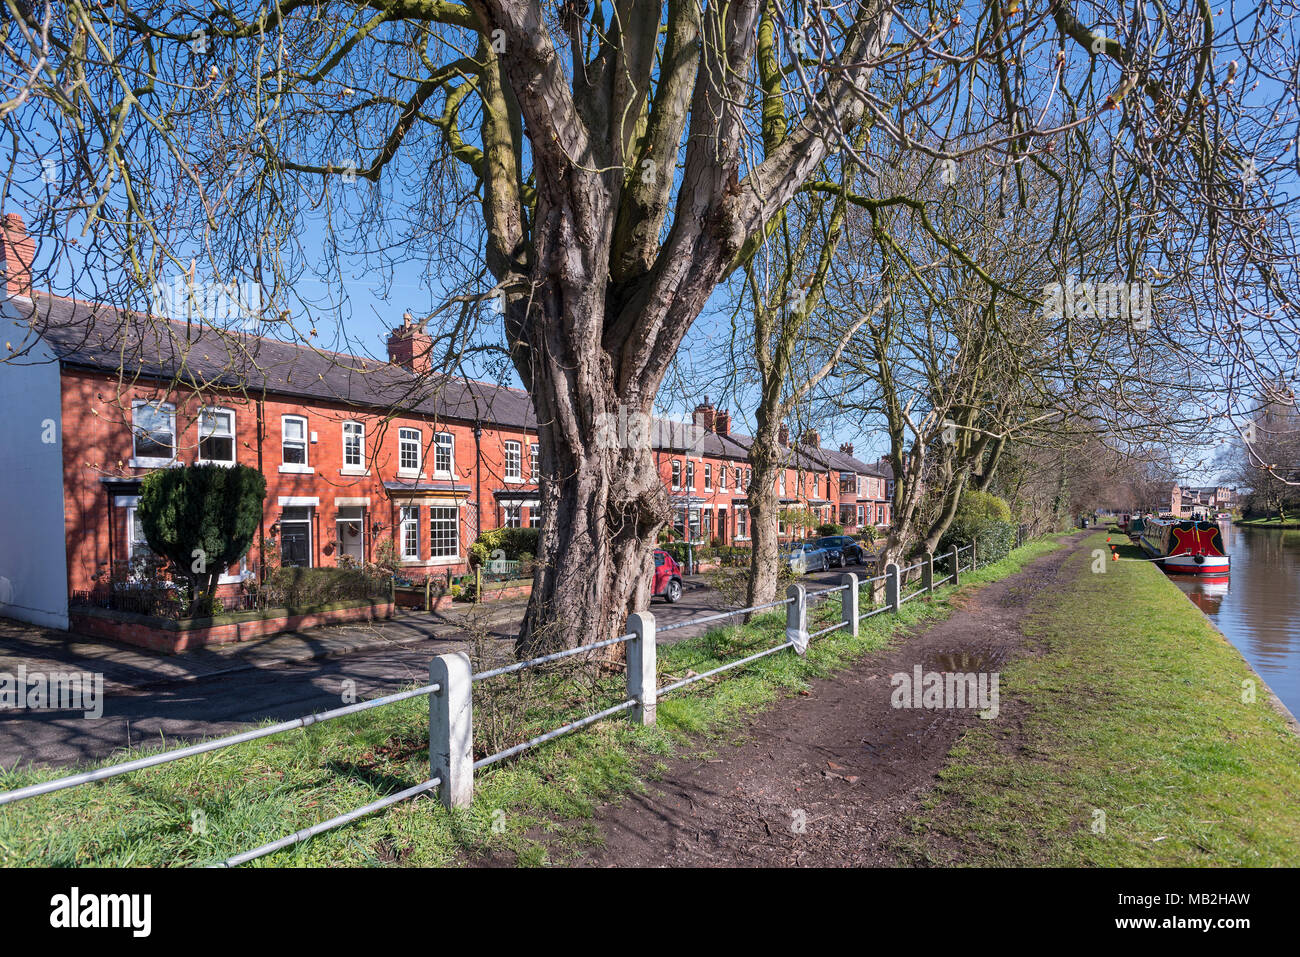 Urban canal towpath scenet on Bridgewater canal at Stockton Heath. Warrington with row of terraced houses - Stock Image